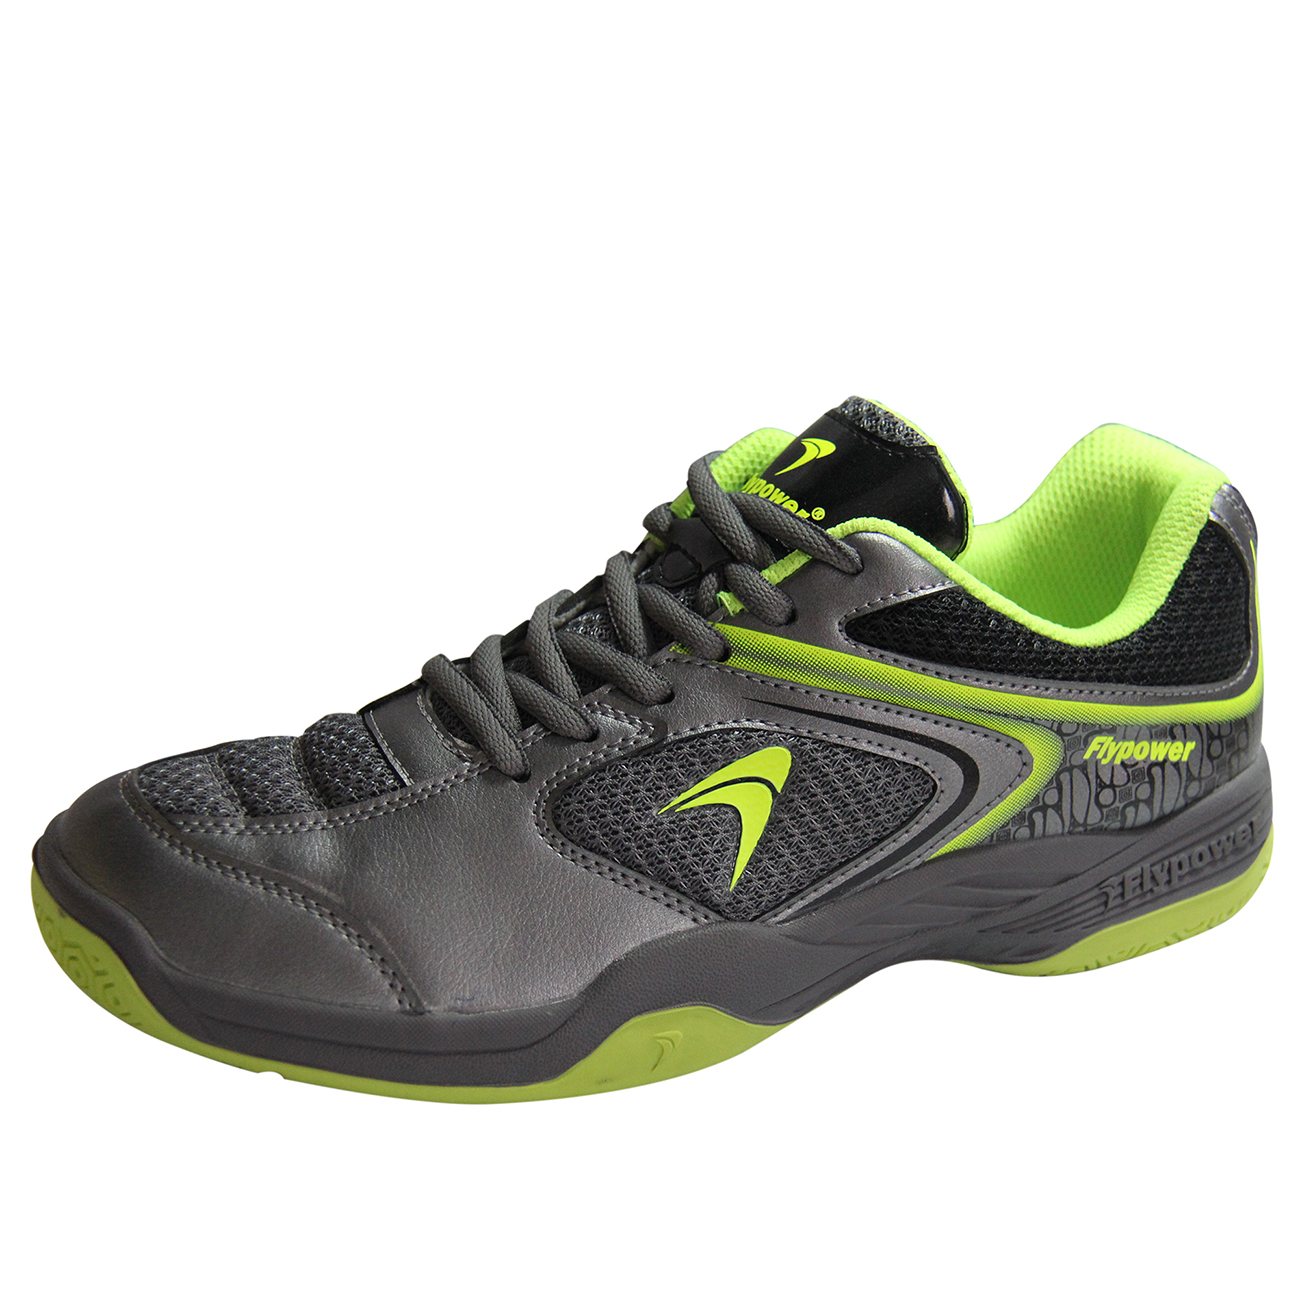 Jual Flypower Pawon 3 Sepatu Badminton - Dark Grey Lime Green   Black Dark  Grey EUR 38 flypower 2656ec90d9